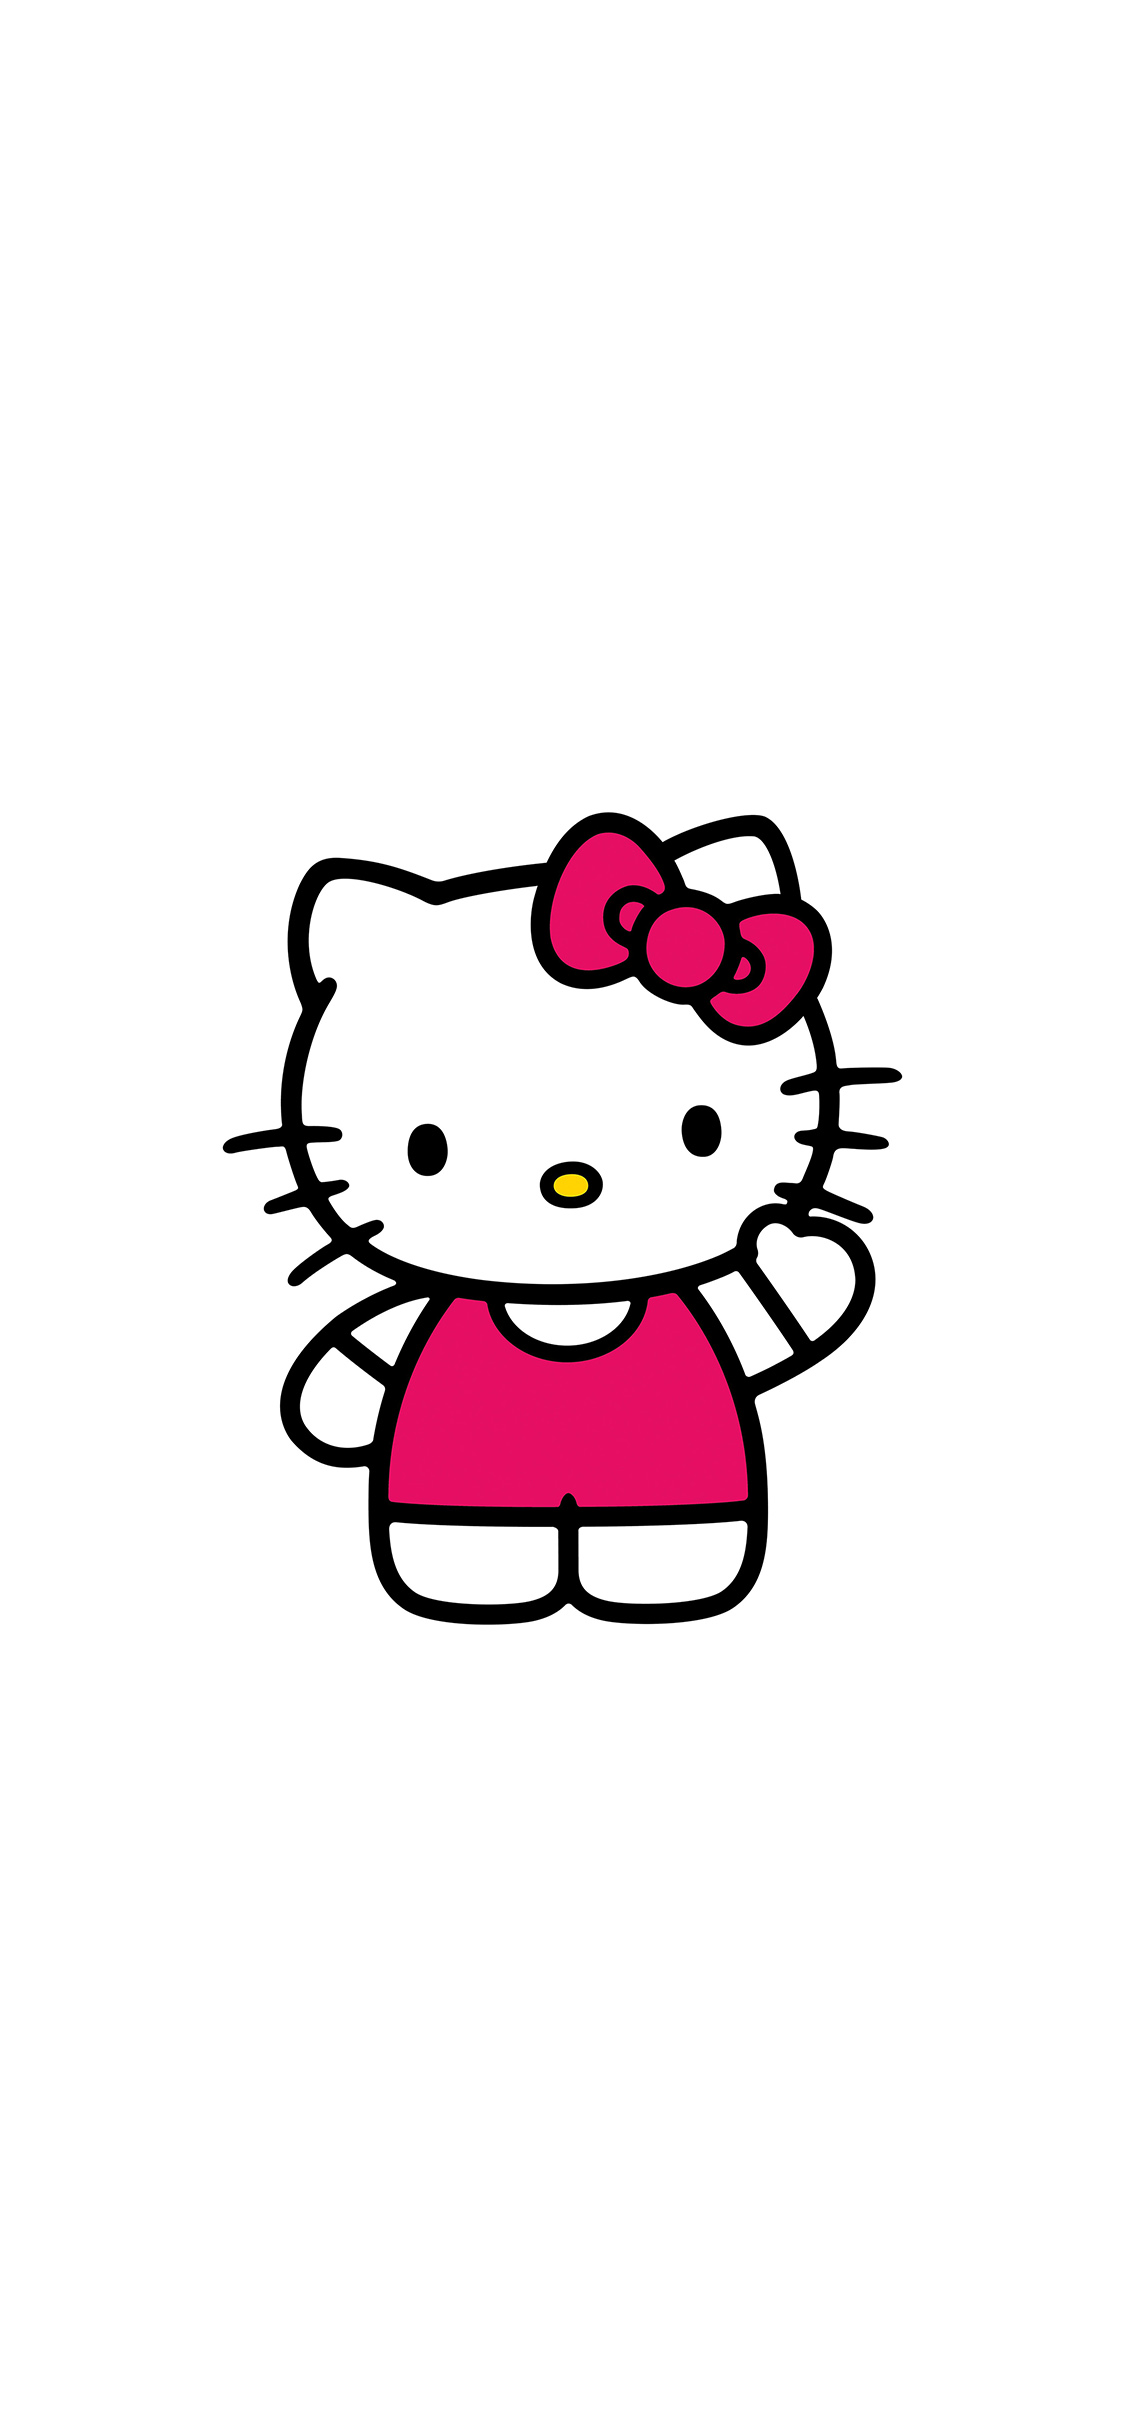 ao80-hello-kitty-art-cute-logo-minimal